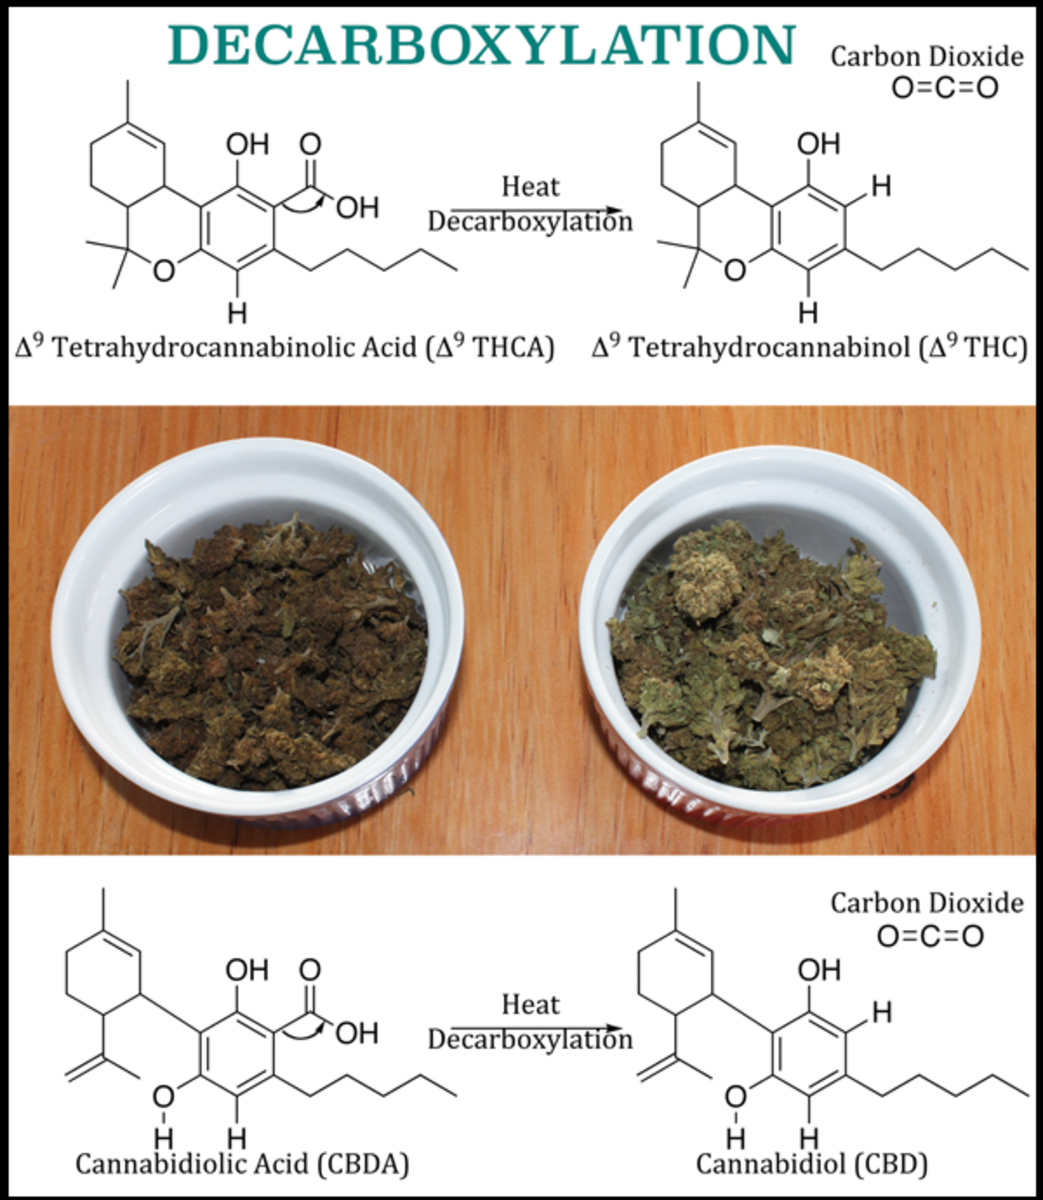 Toasted (activated) herbs on the left, dried herbs on the right